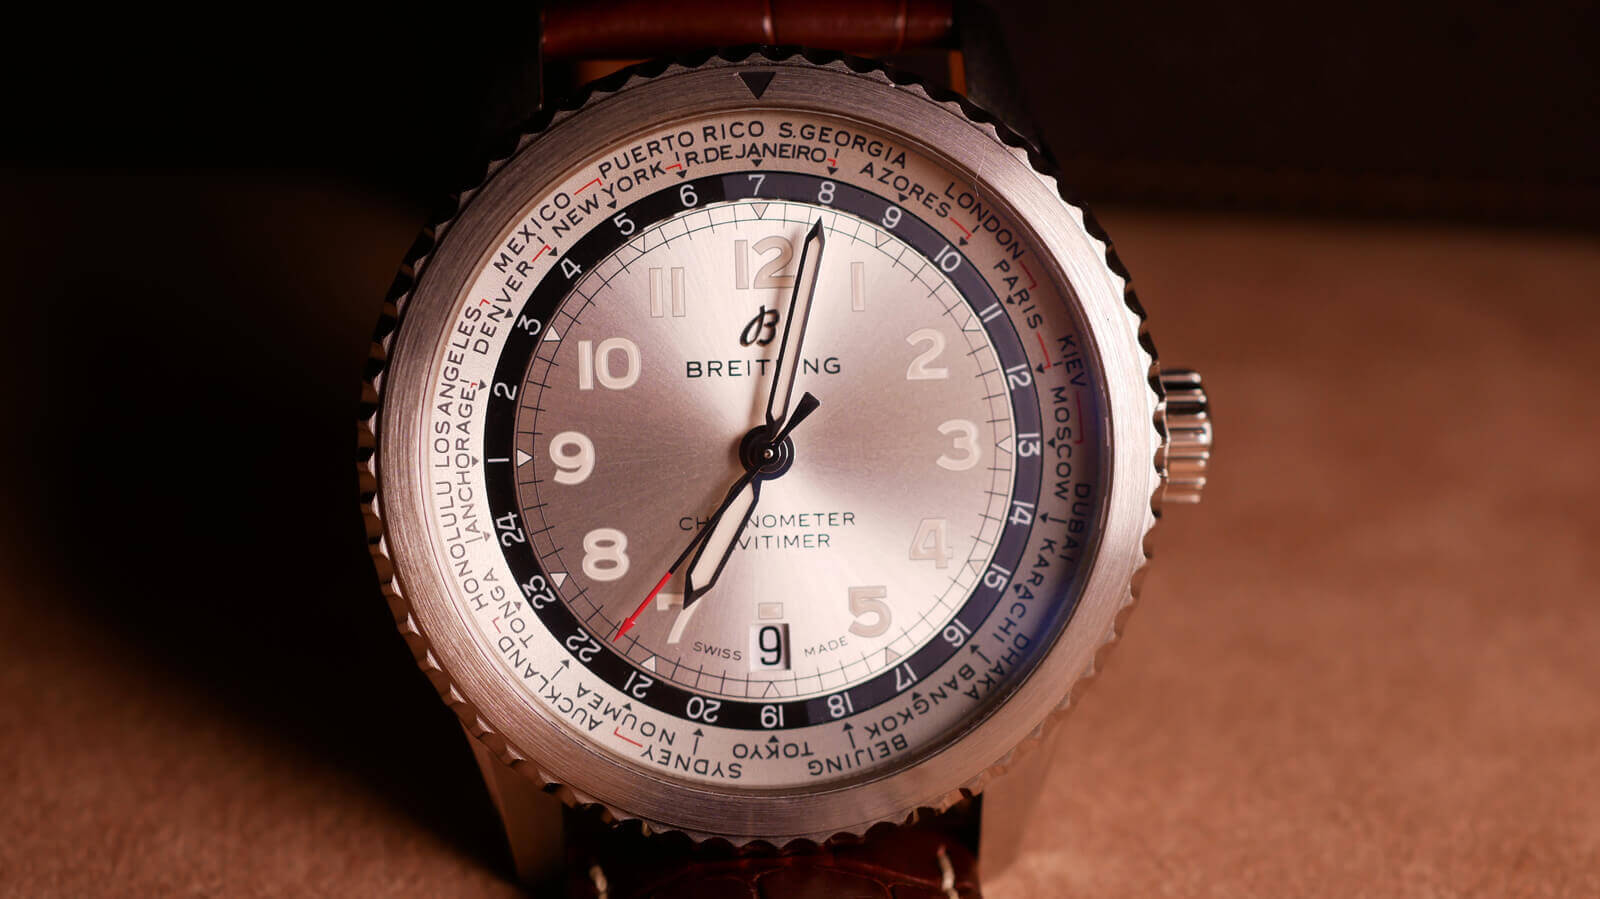 Interview with Guy Bove, Creative Director, Breitling